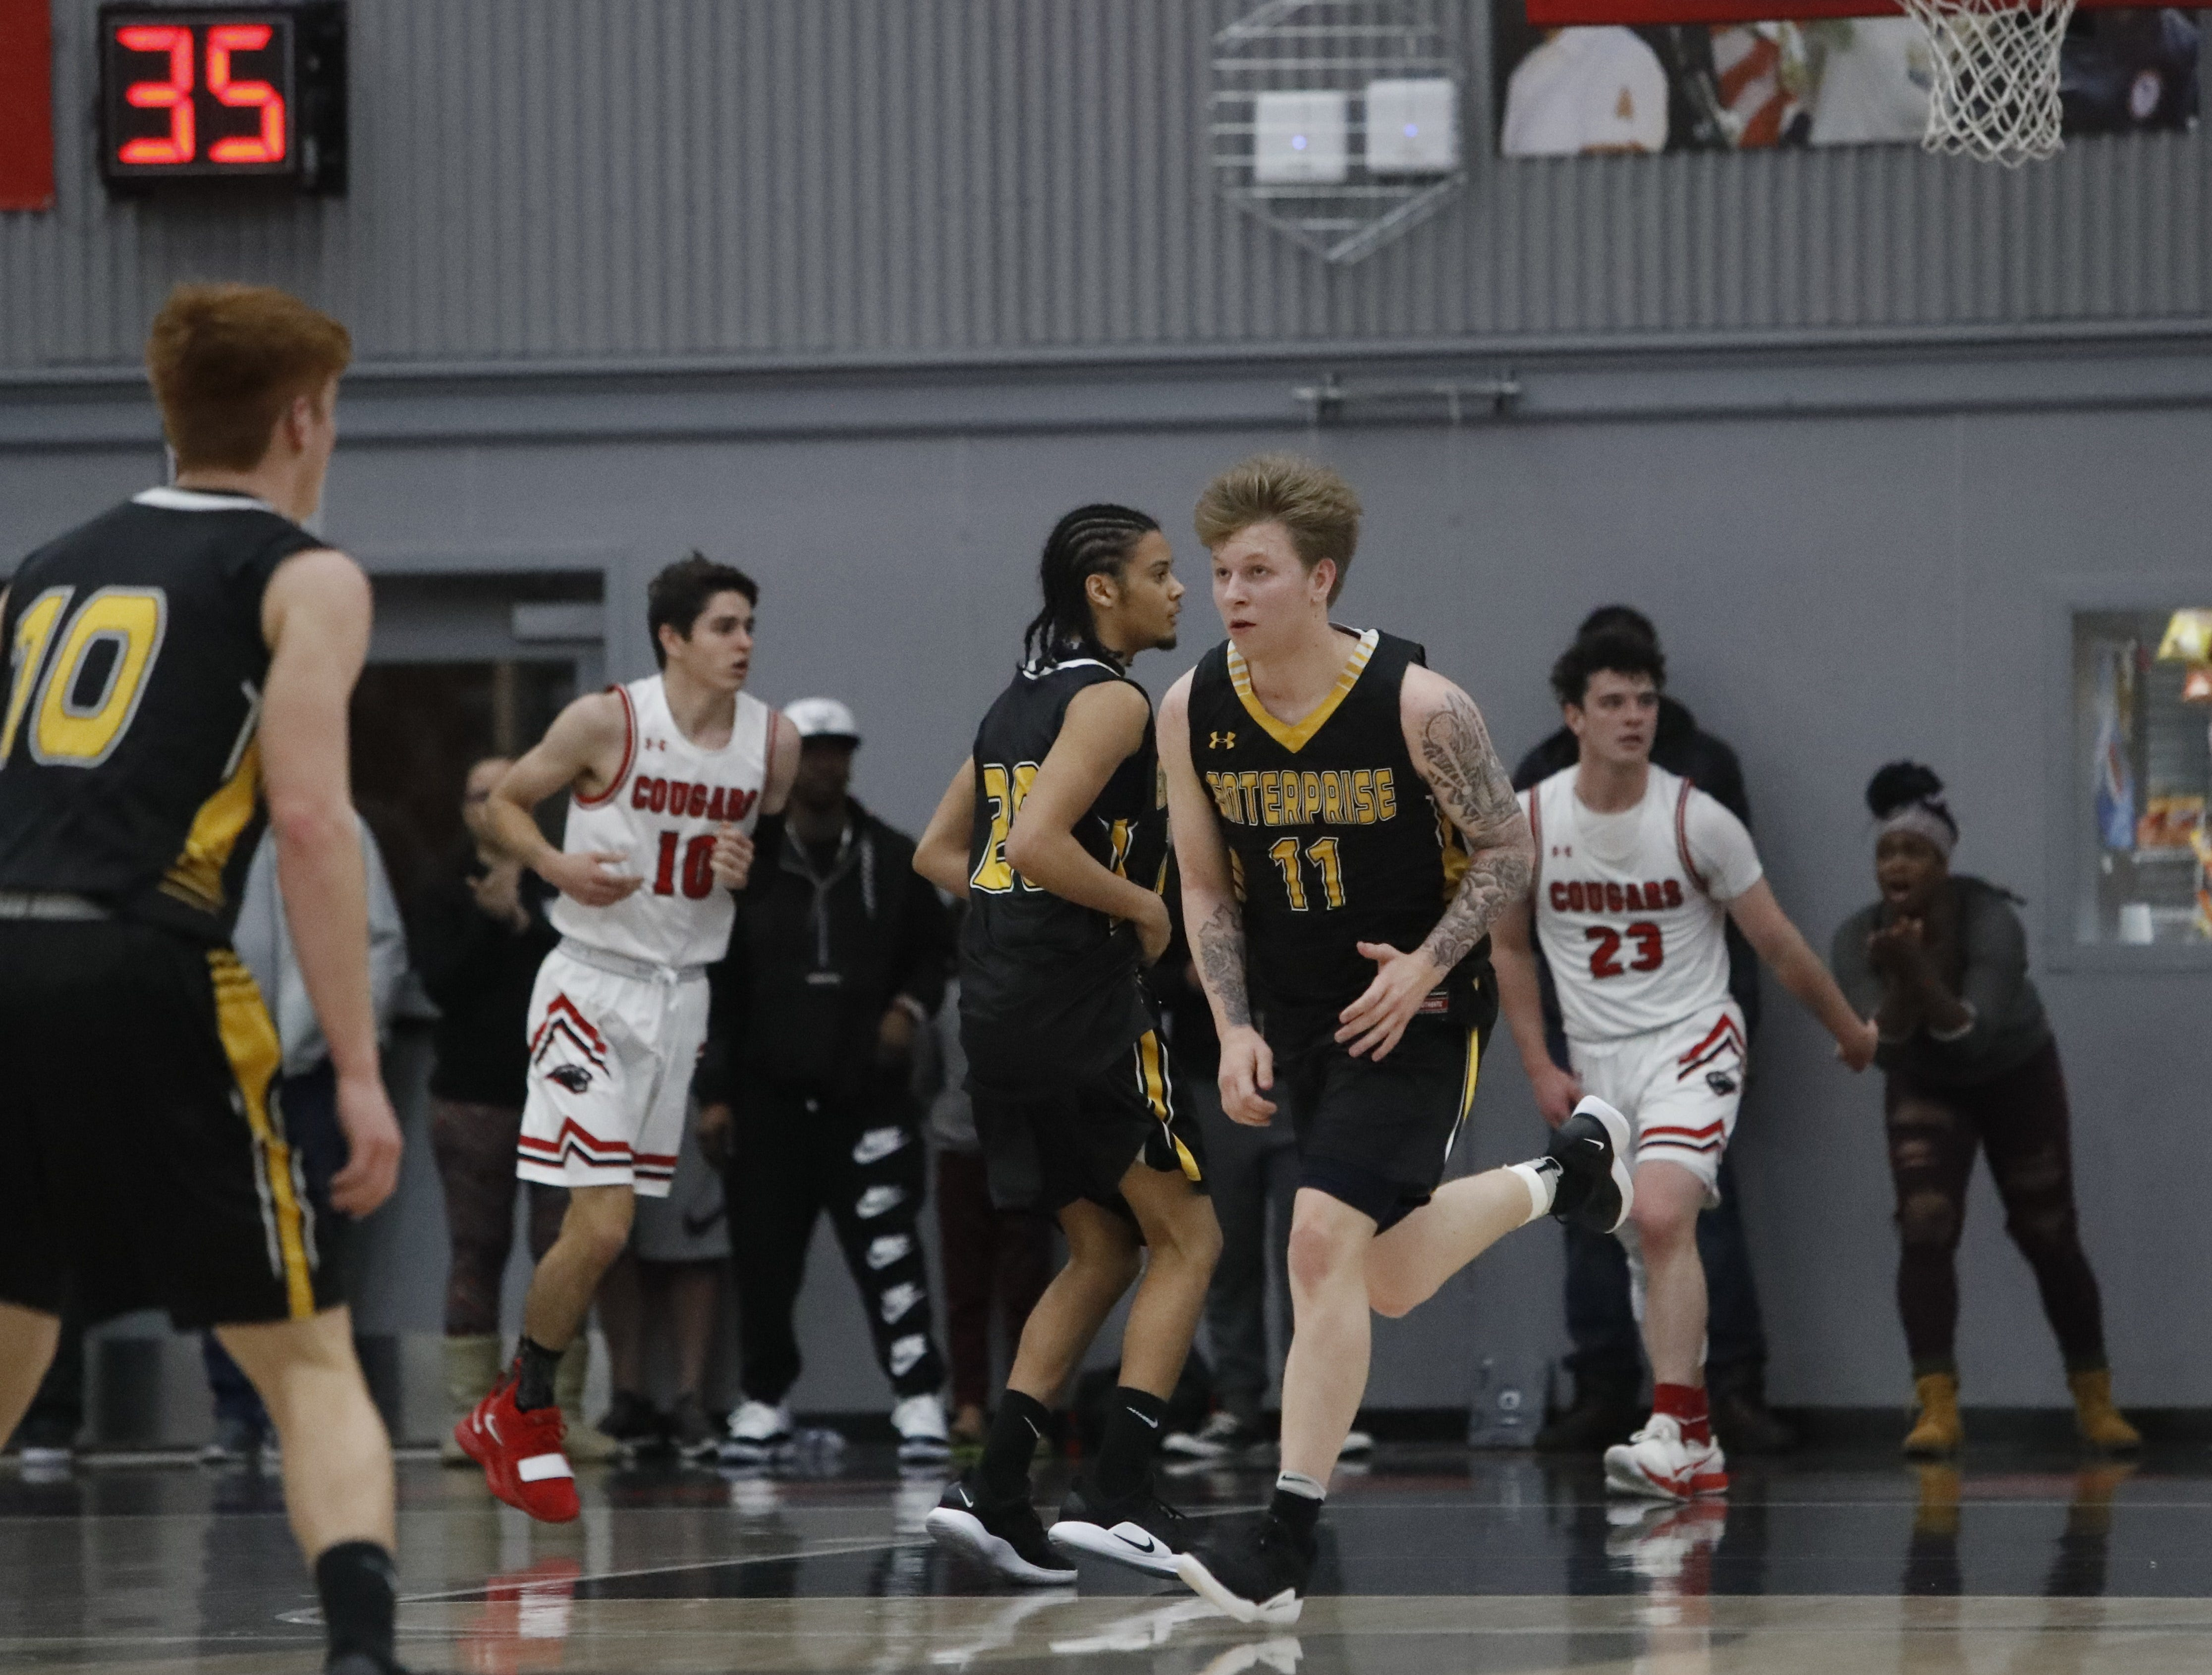 Enterprise guard Ryder O'Banion jogs back on defense after making a layup against Foothill during the Cougars' 55-50 win over the Hornets in the Division III Northern Section semifinals on Wednesday, Feb. 20.